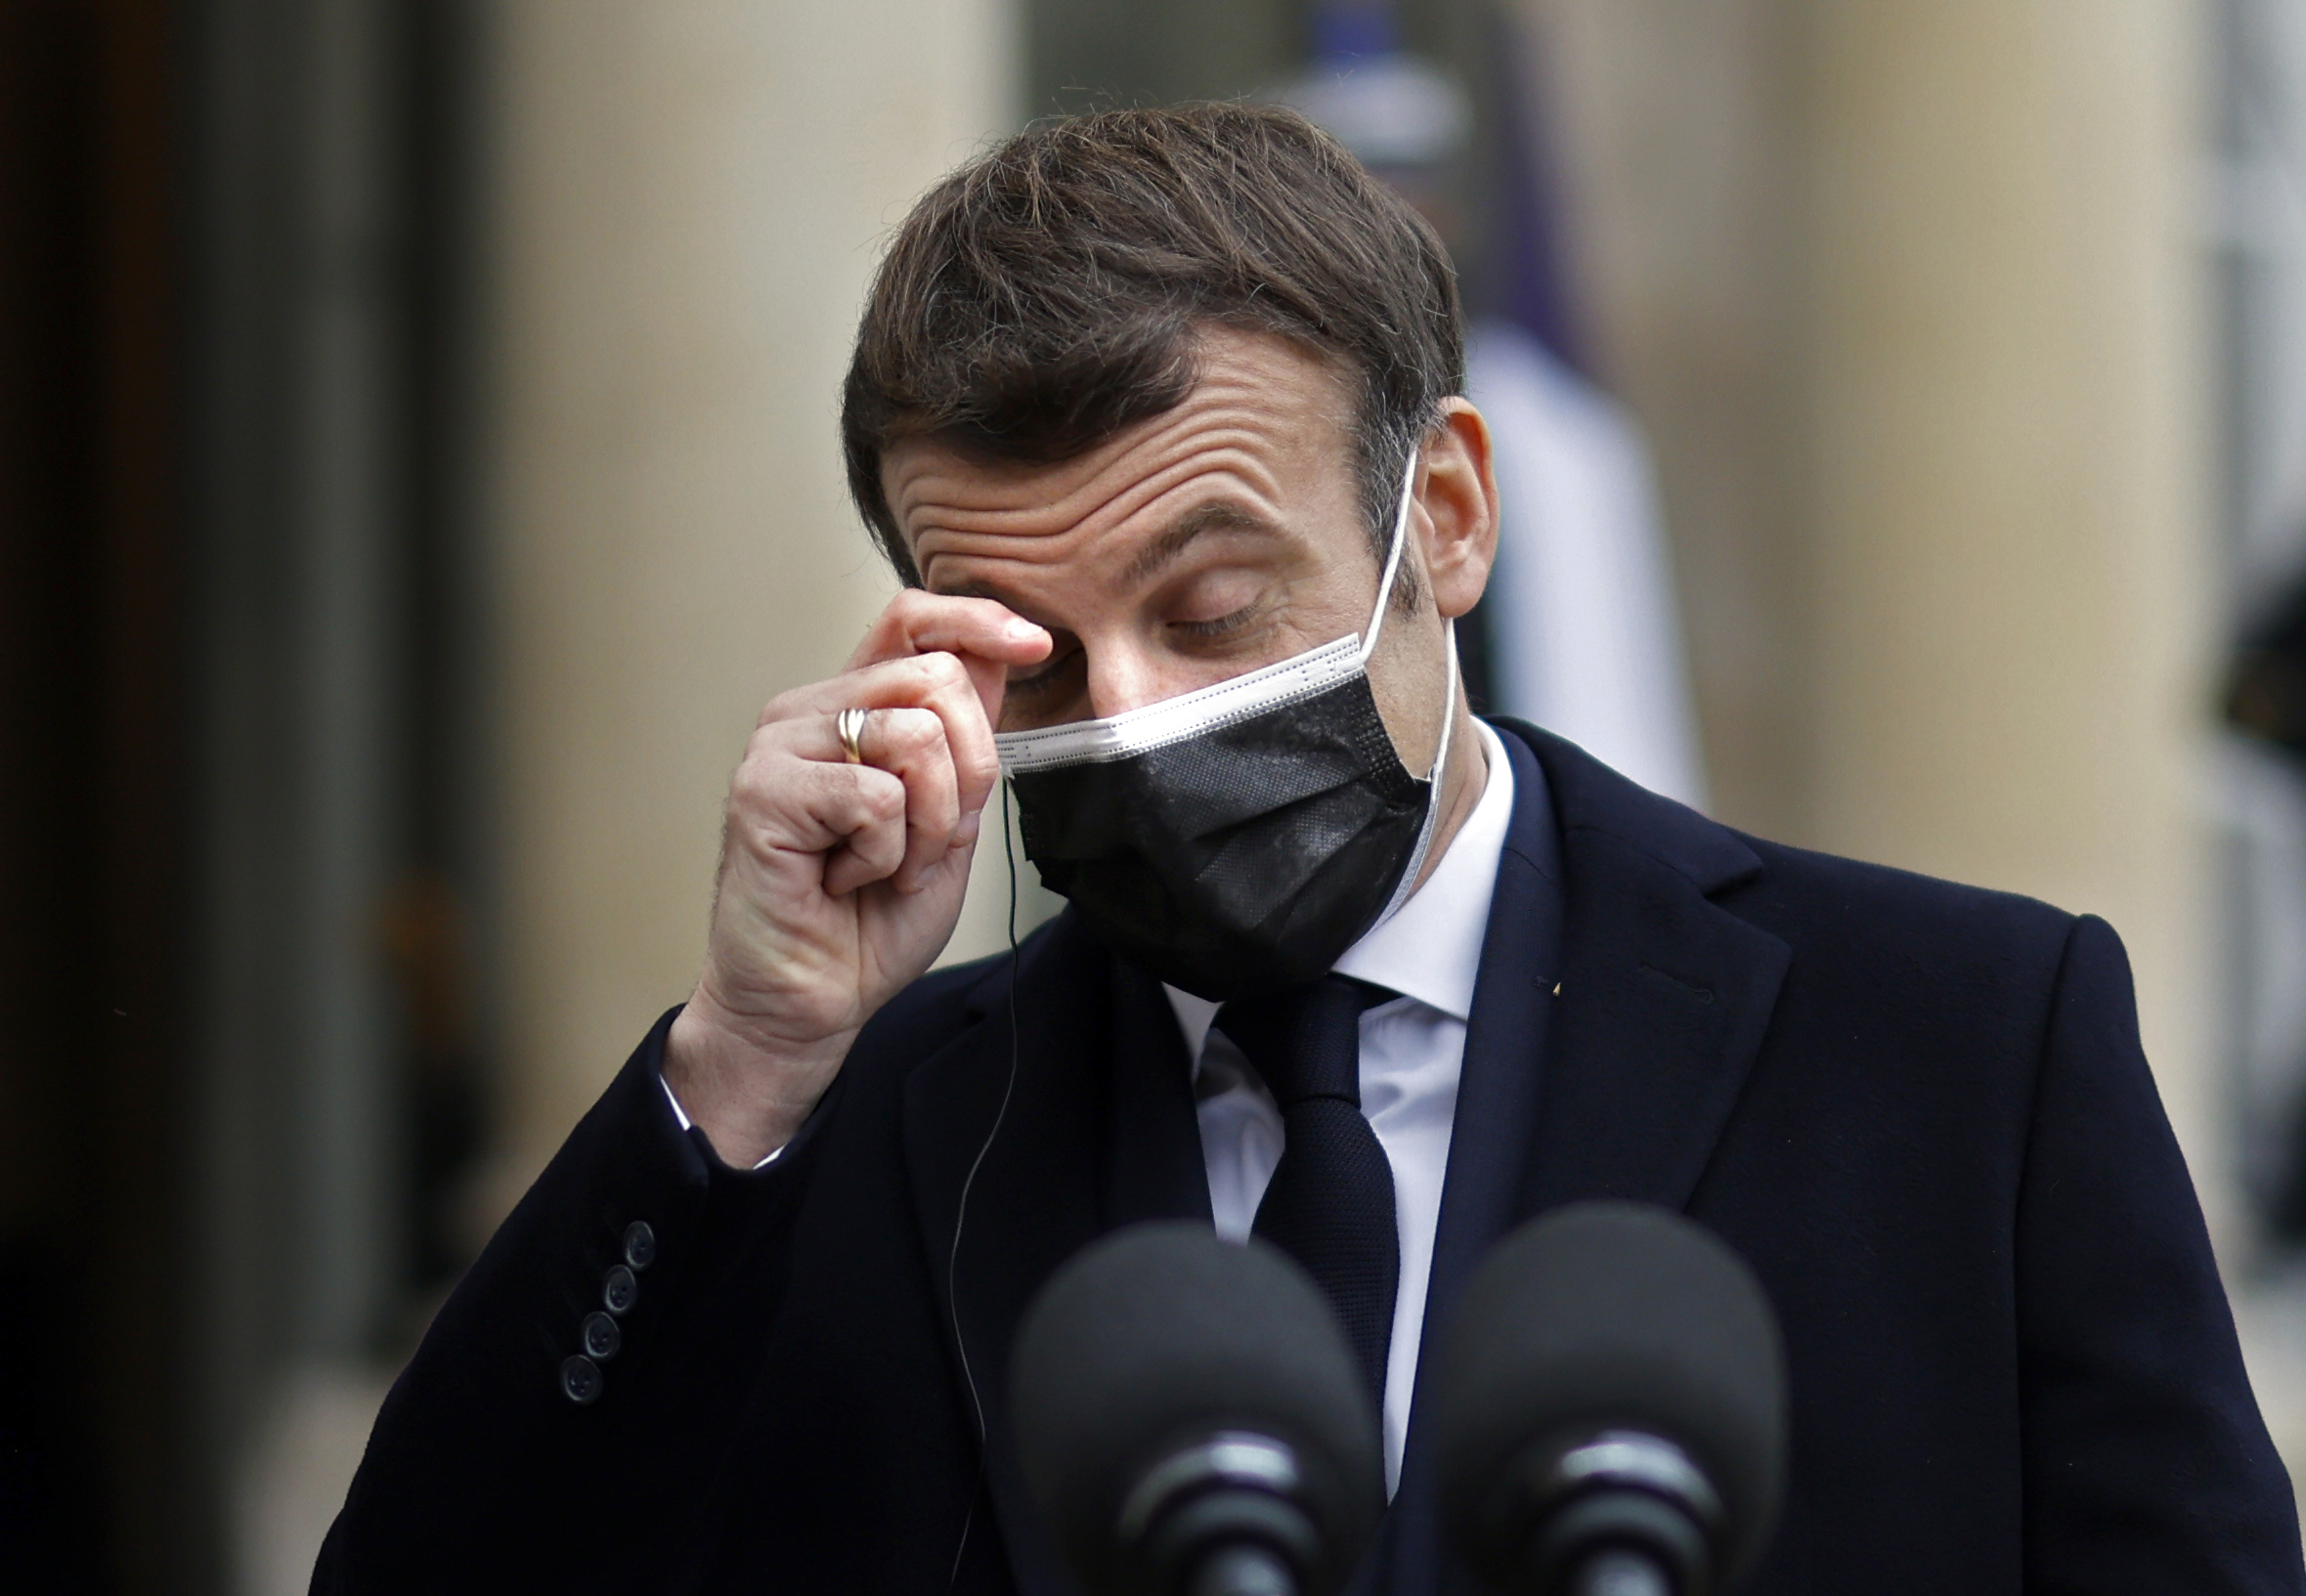 A picture taken on December 16, 2020 shows French President Emmanuel Macron gesturing as he addresses the press upon the arrival of Portuguese Prime minister for a working lunch at the Elysee presidential palace in Paris. - French President Emmanuel Macron has tested positive for Covid-19 on December 17, 2020, the presidency said, adding that he would now self-isolate for the next week. (Photo by THOMAS COEX/AFP via Getty Images)